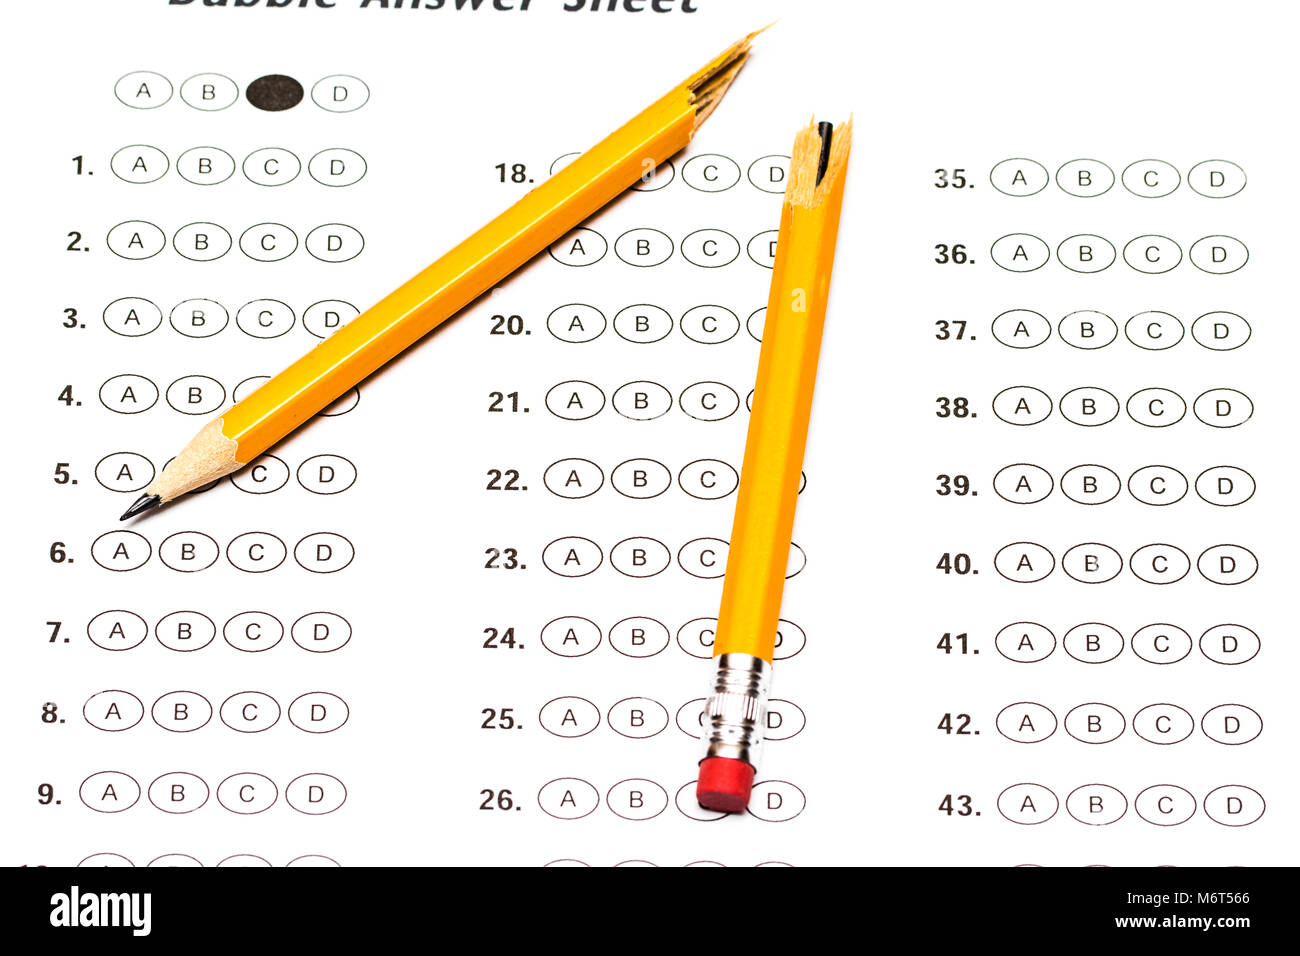 Test Form Stock Photos Amp Test Form Stock Images Alamy